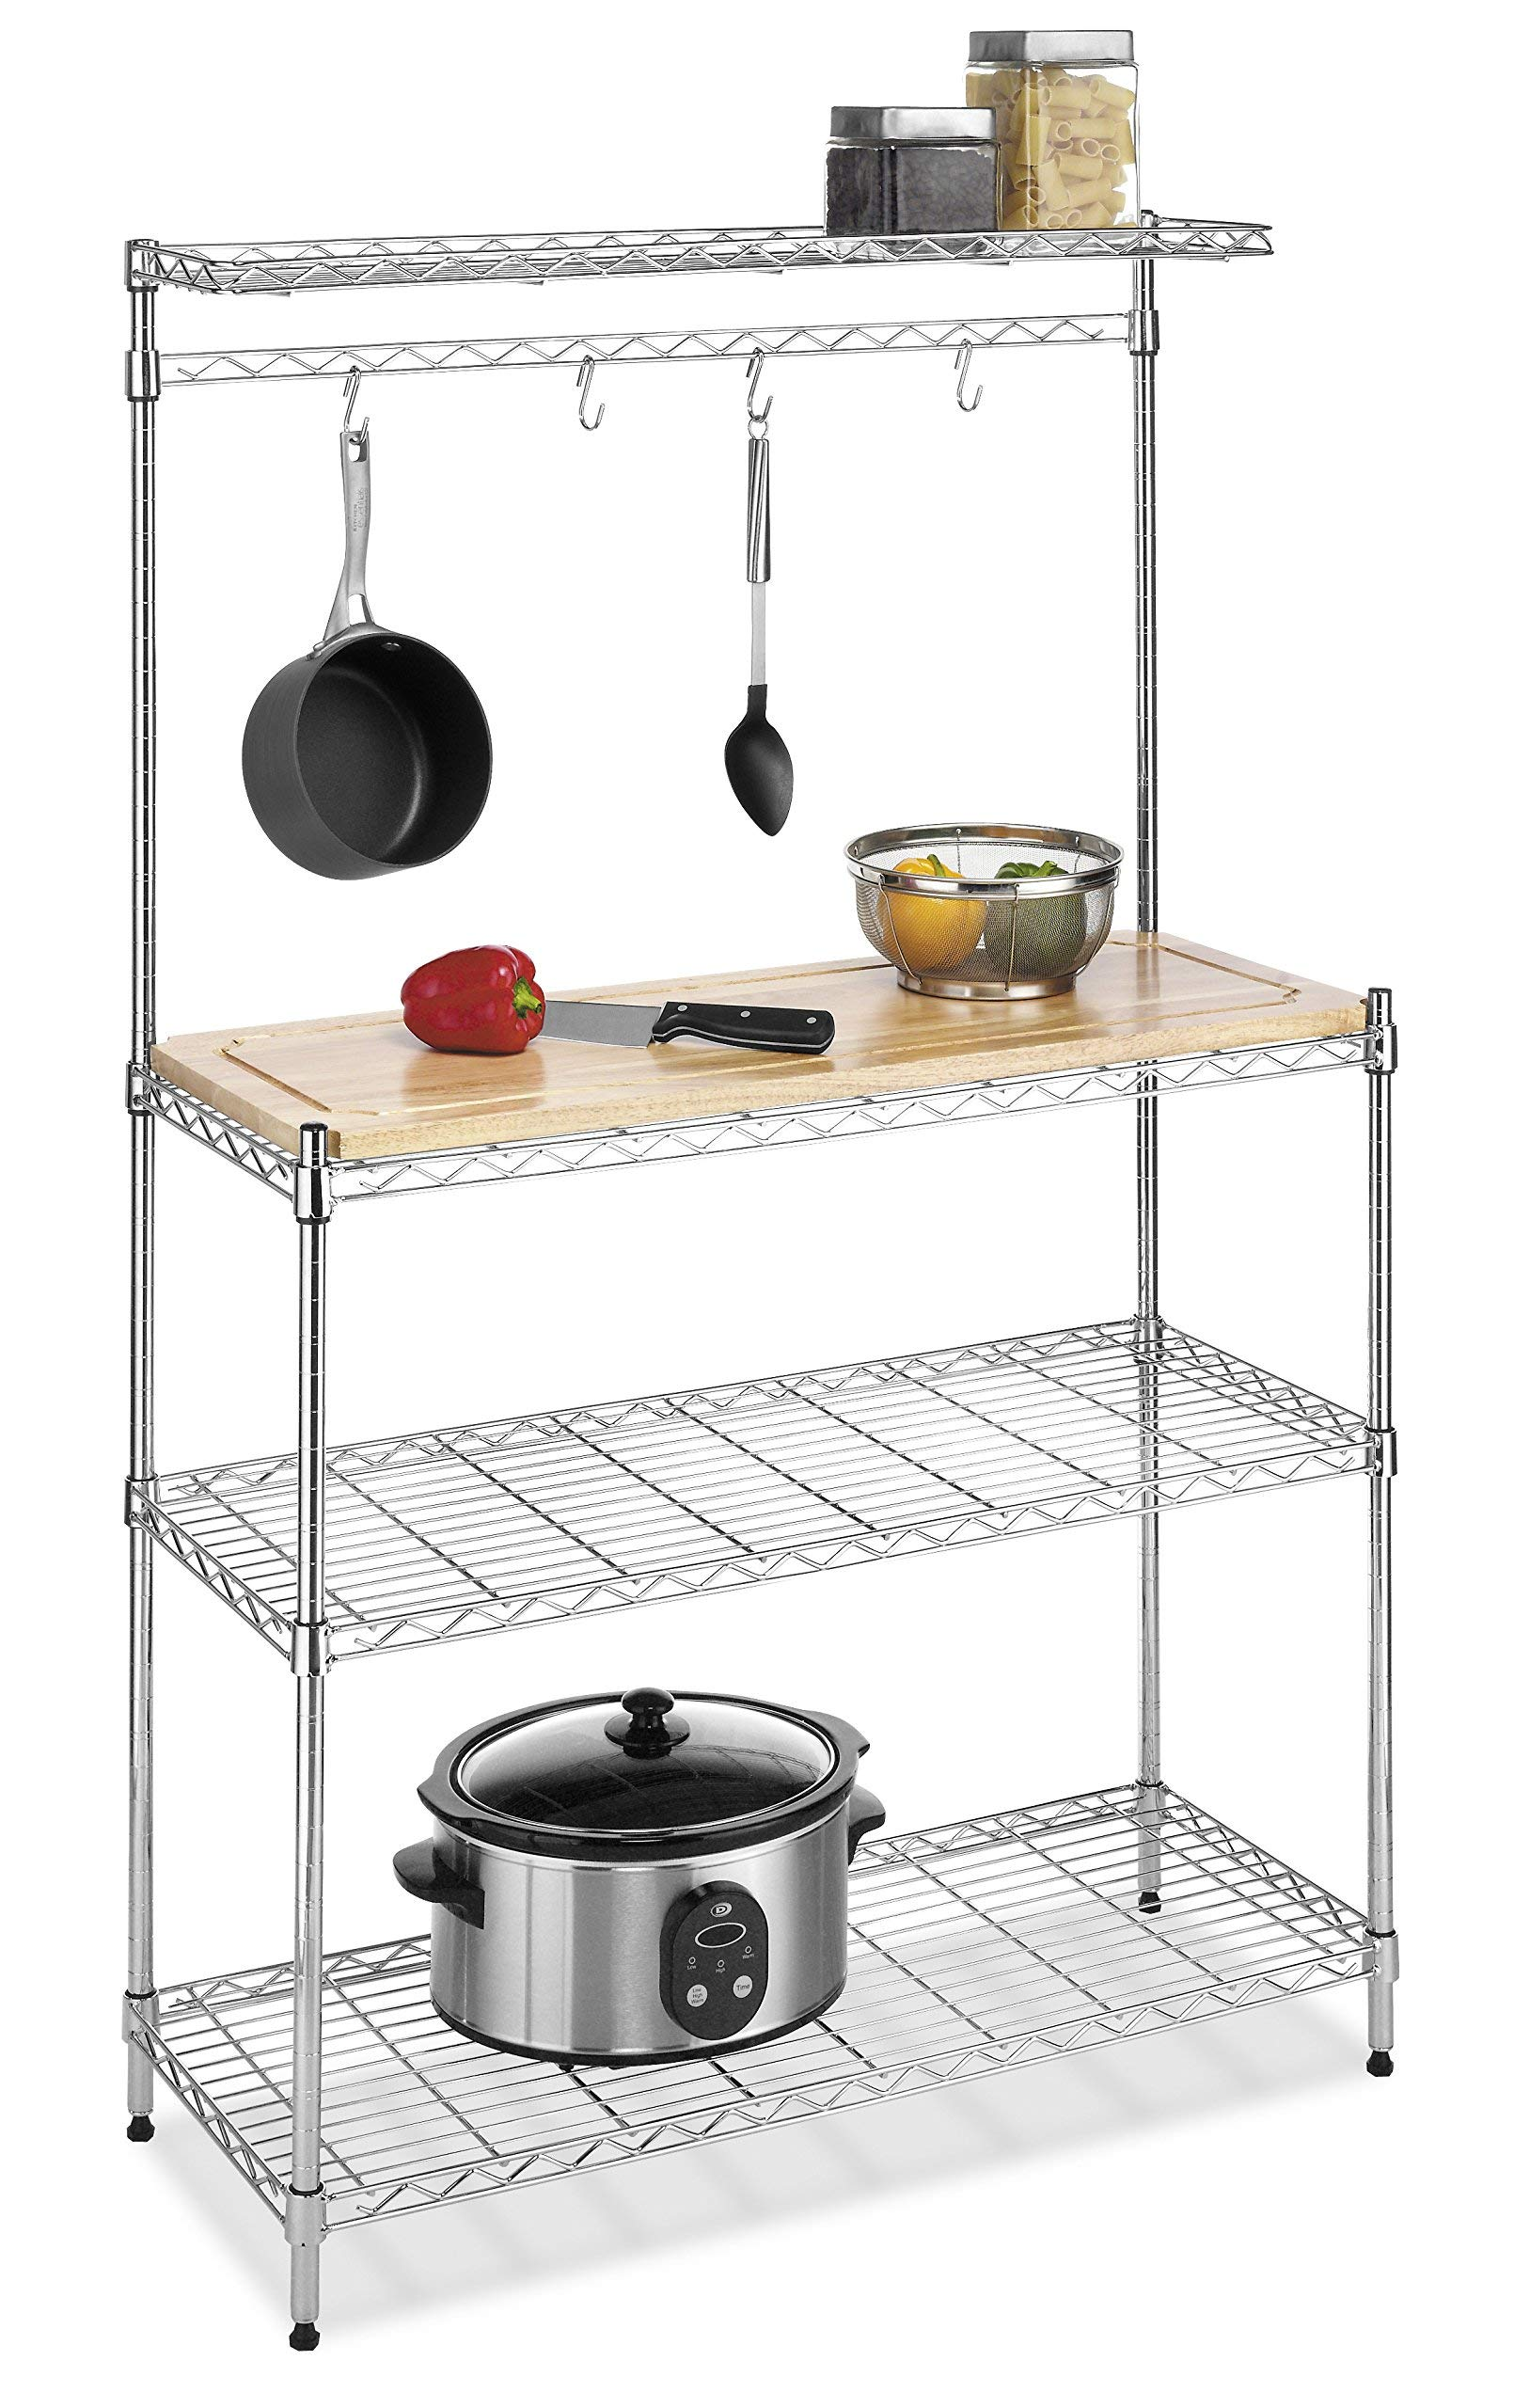 Whitmor Supreme Baker's Rack with Food Safe Removable Wood Cutting Board - Chrome (Renewed) by Whitmor